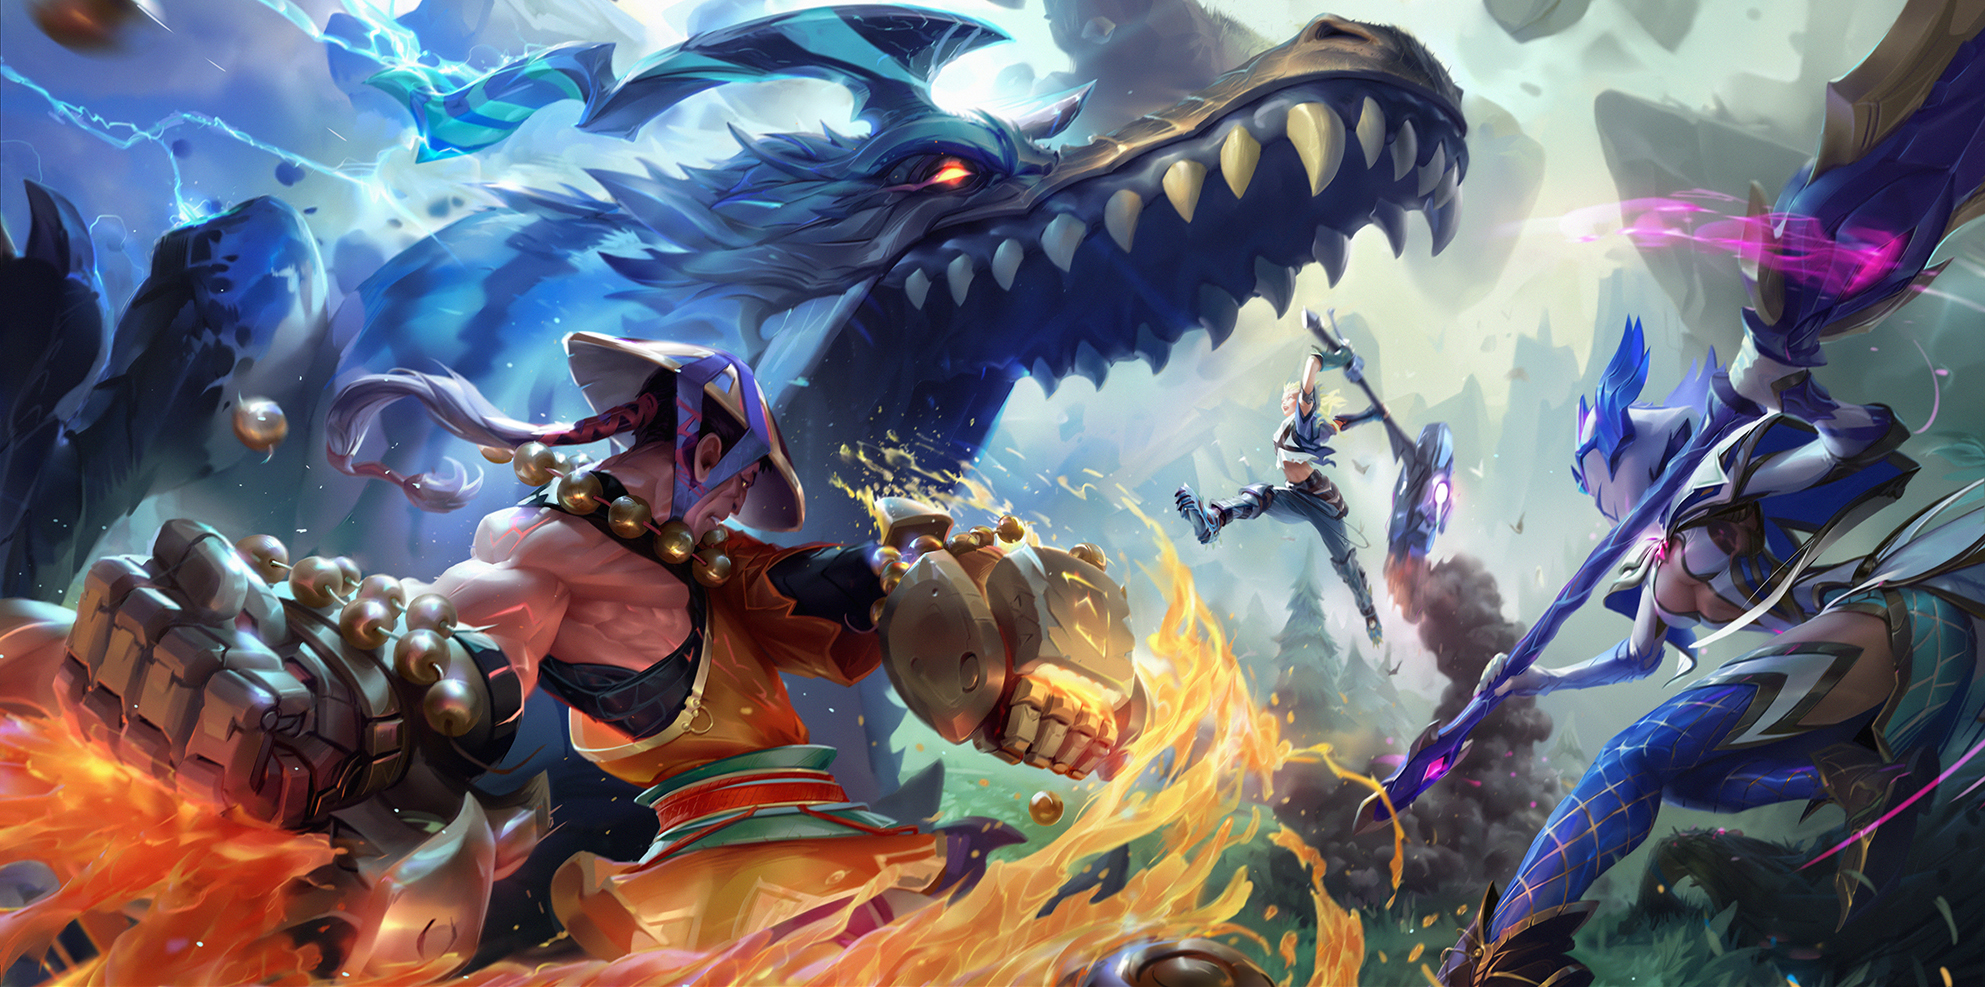 Dauntless is leaving Early Access later this month with a massive 1.0 patch